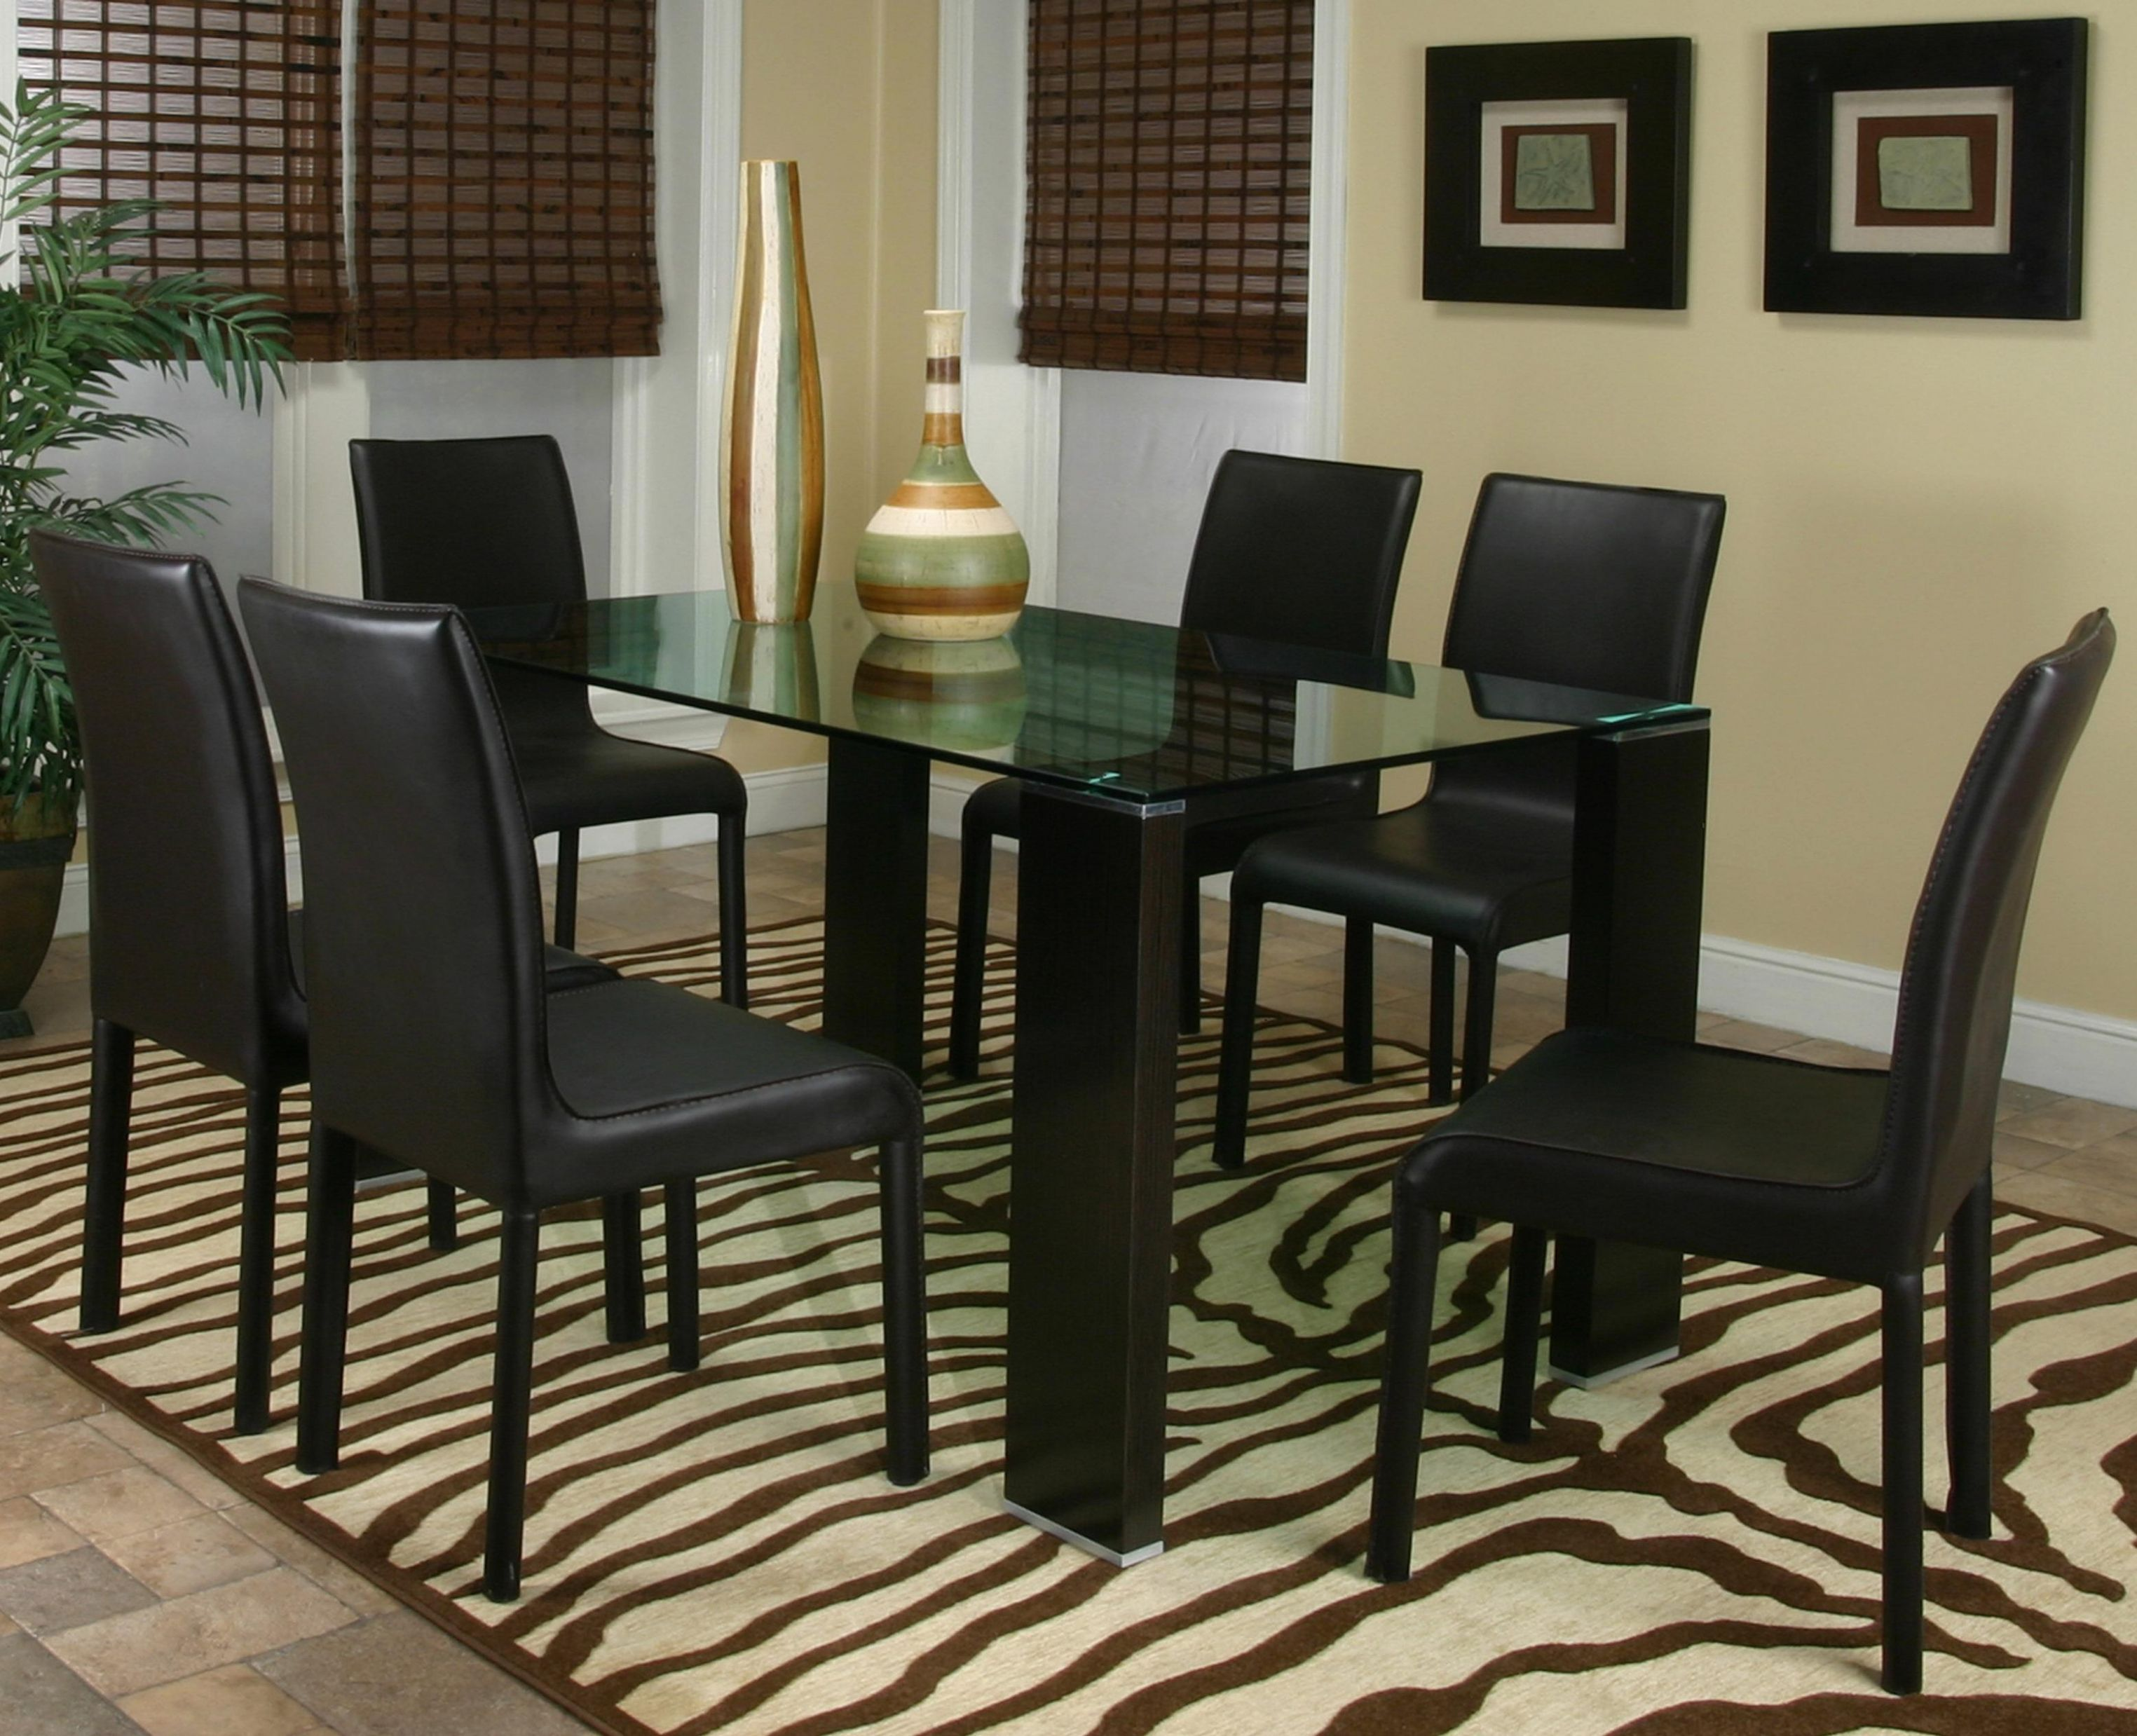 20 Awesome Zebra Dining Room Chairs 2019 Deco Idee